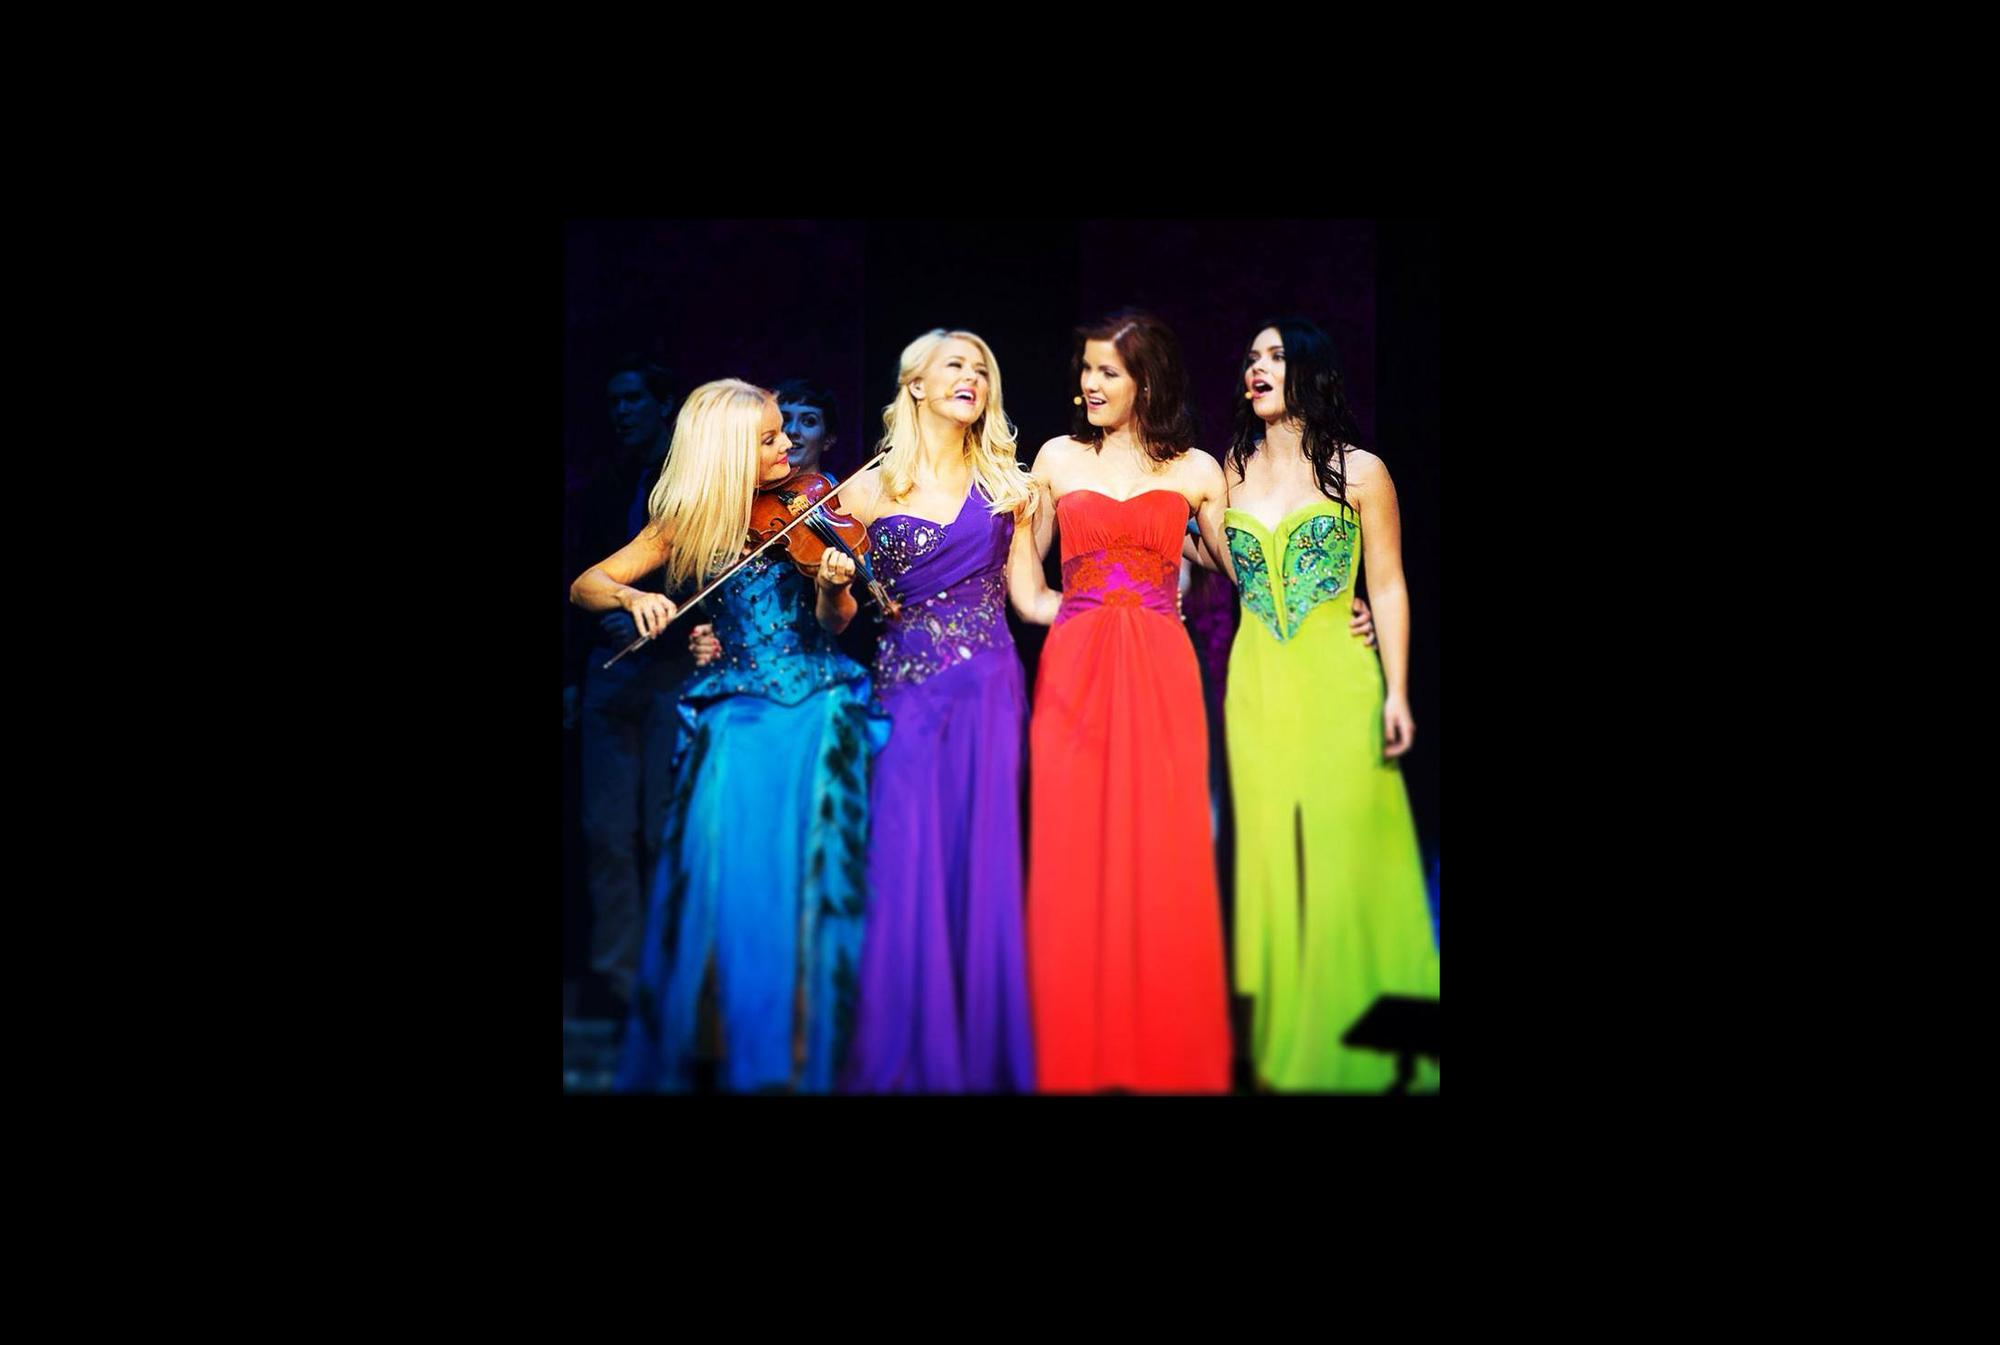 celtic woman home for christmas the symphony tour tickets in bethlehem pa united states - Celtic Woman Home For Christmas